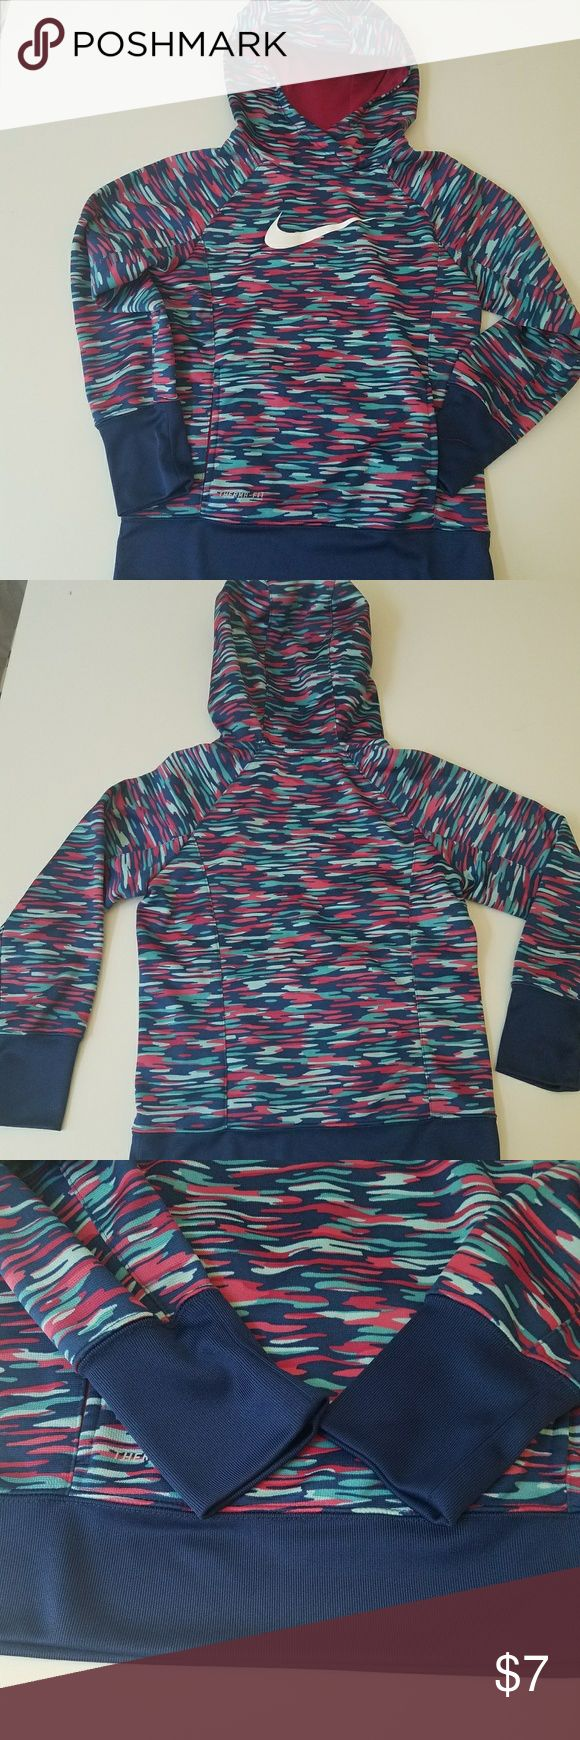 Girl's Nike Therma-FIT Fleece Hoodie Great - comfortable fit, good quality at a good price. No stains, no tears. Gentle used. Girl's Size Medium  Youth. Should fits ages 8-10 according to Nike size chart. It's a slimmer fit. Nike Shirts & Tops Sweatshirts & Hoodies